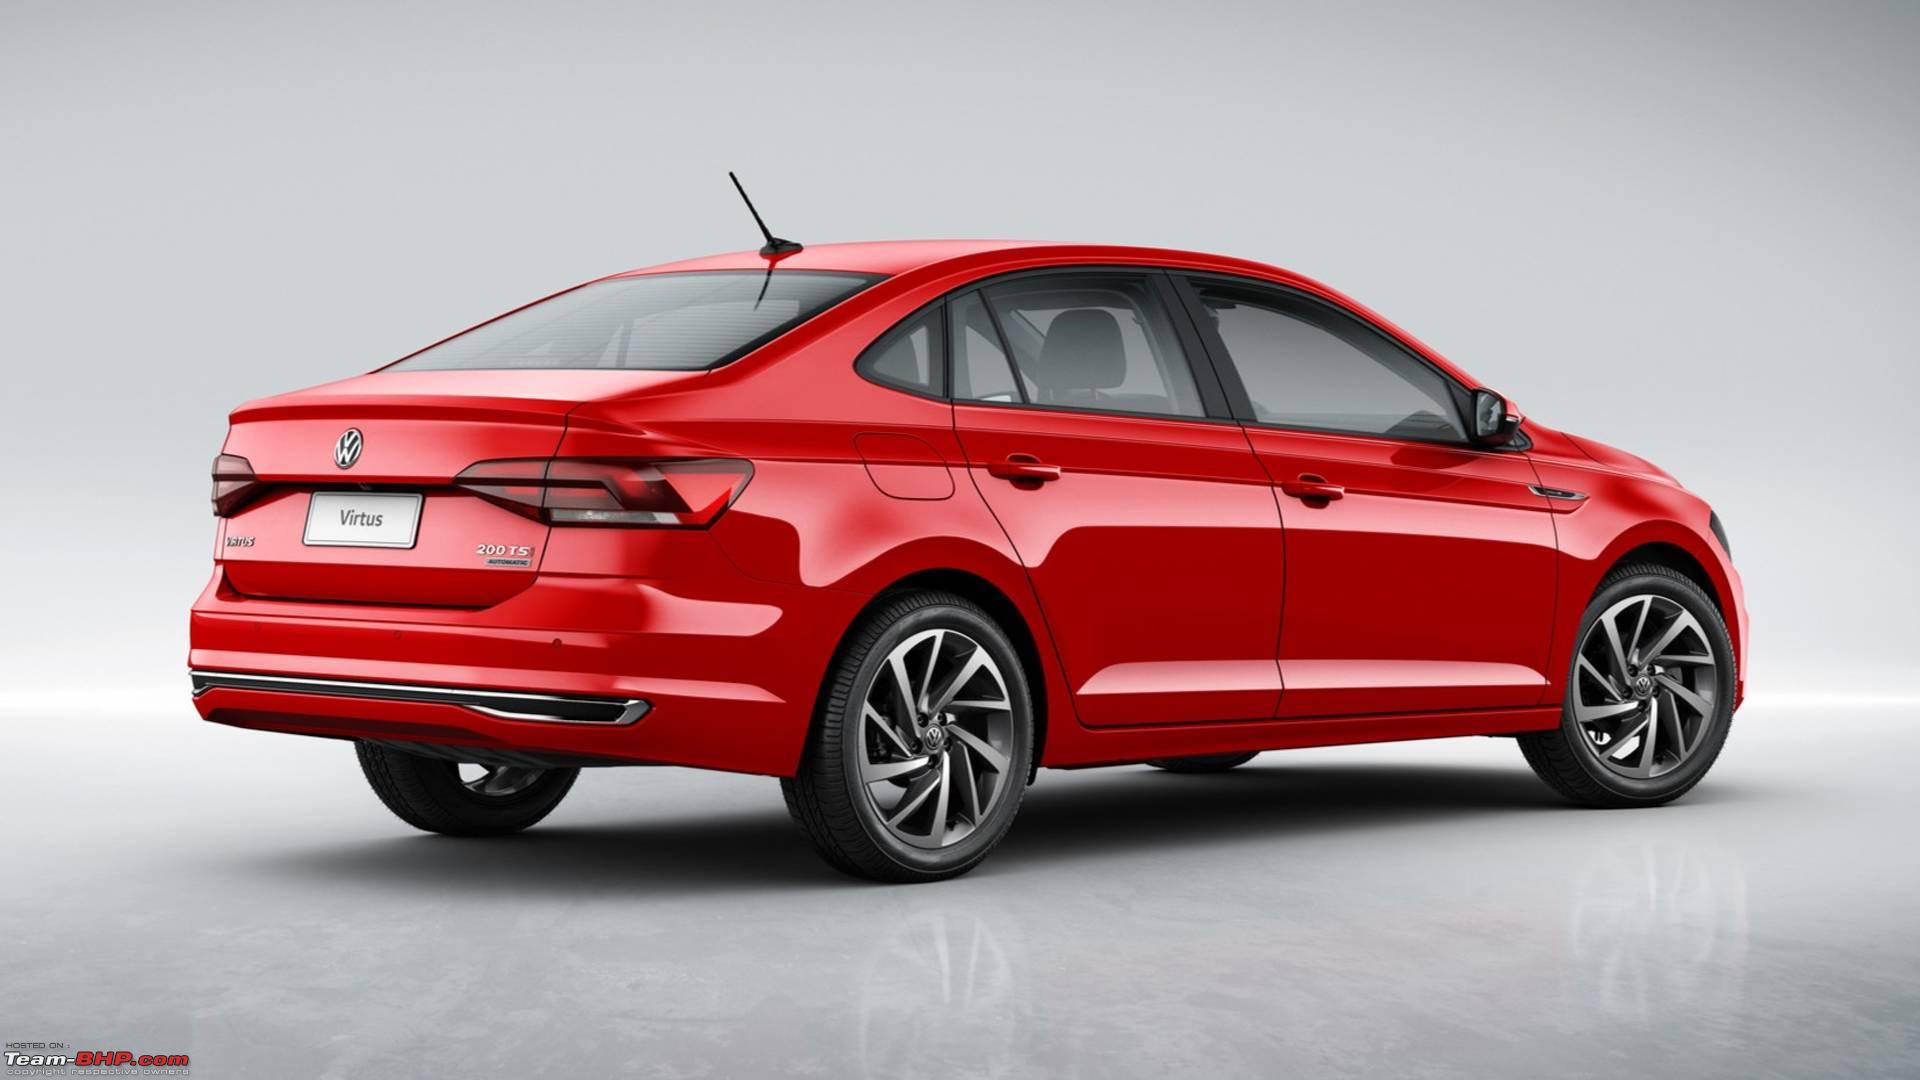 Virtus, the 2018 VW Polo sedan (Vento replacement). EDIT ...